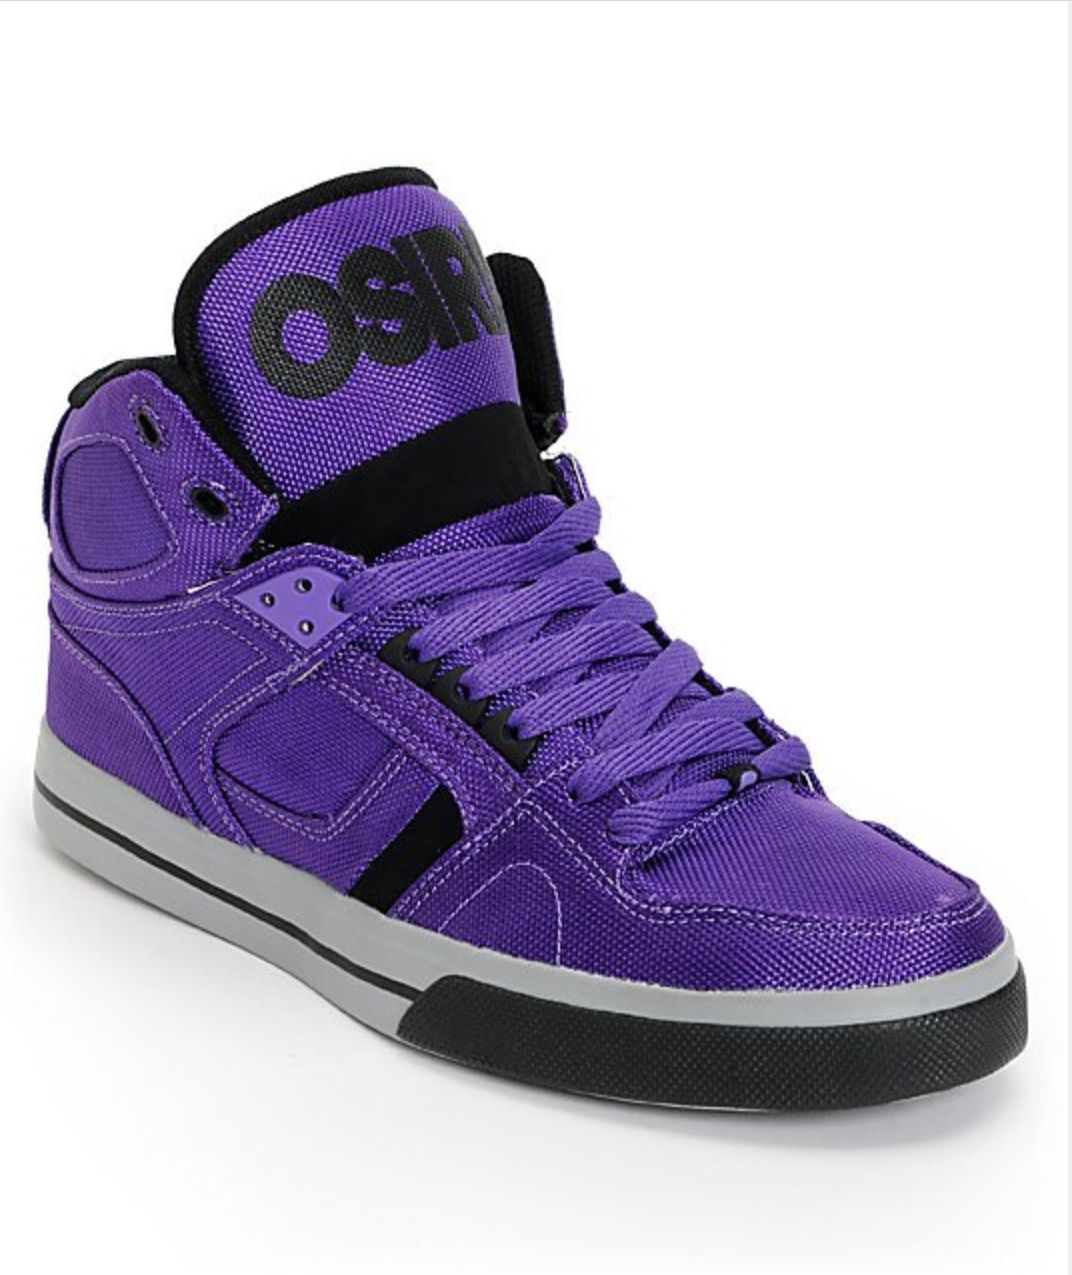 f10bb0928d0 Osiris Shoes, Popular Sneakers, Purple And Black, Fresh Kicks, Skate Shoes,